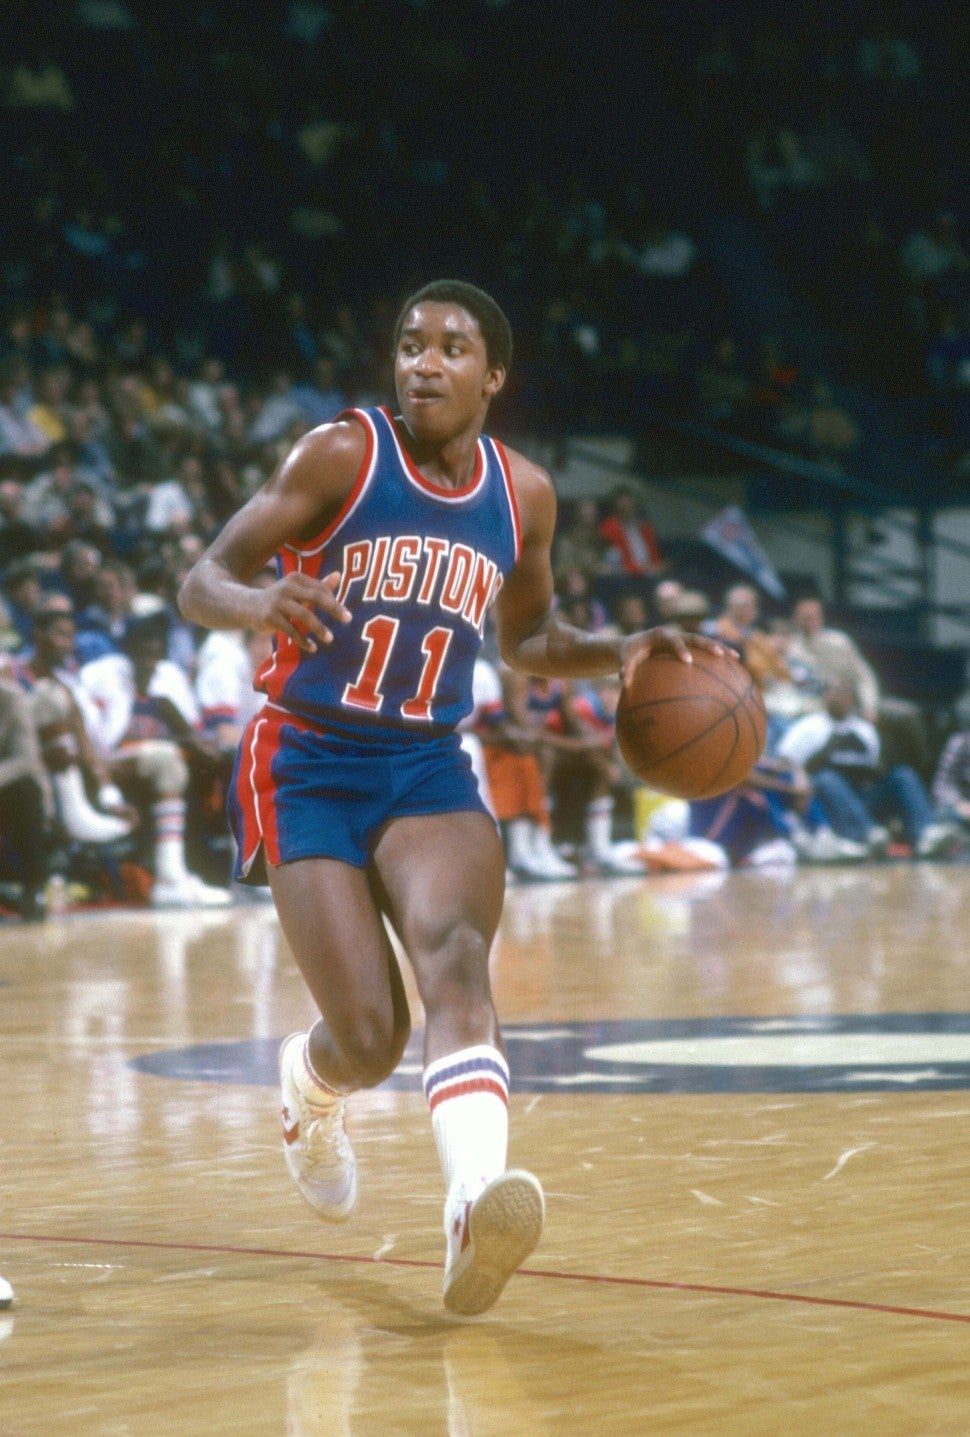 Isiah Thomas #11 of the Detroit Pistons dribbles the ball against the Washington Bullets during an NBA basketball game circa 1983 at The Capital Centre in Landover, Maryland.